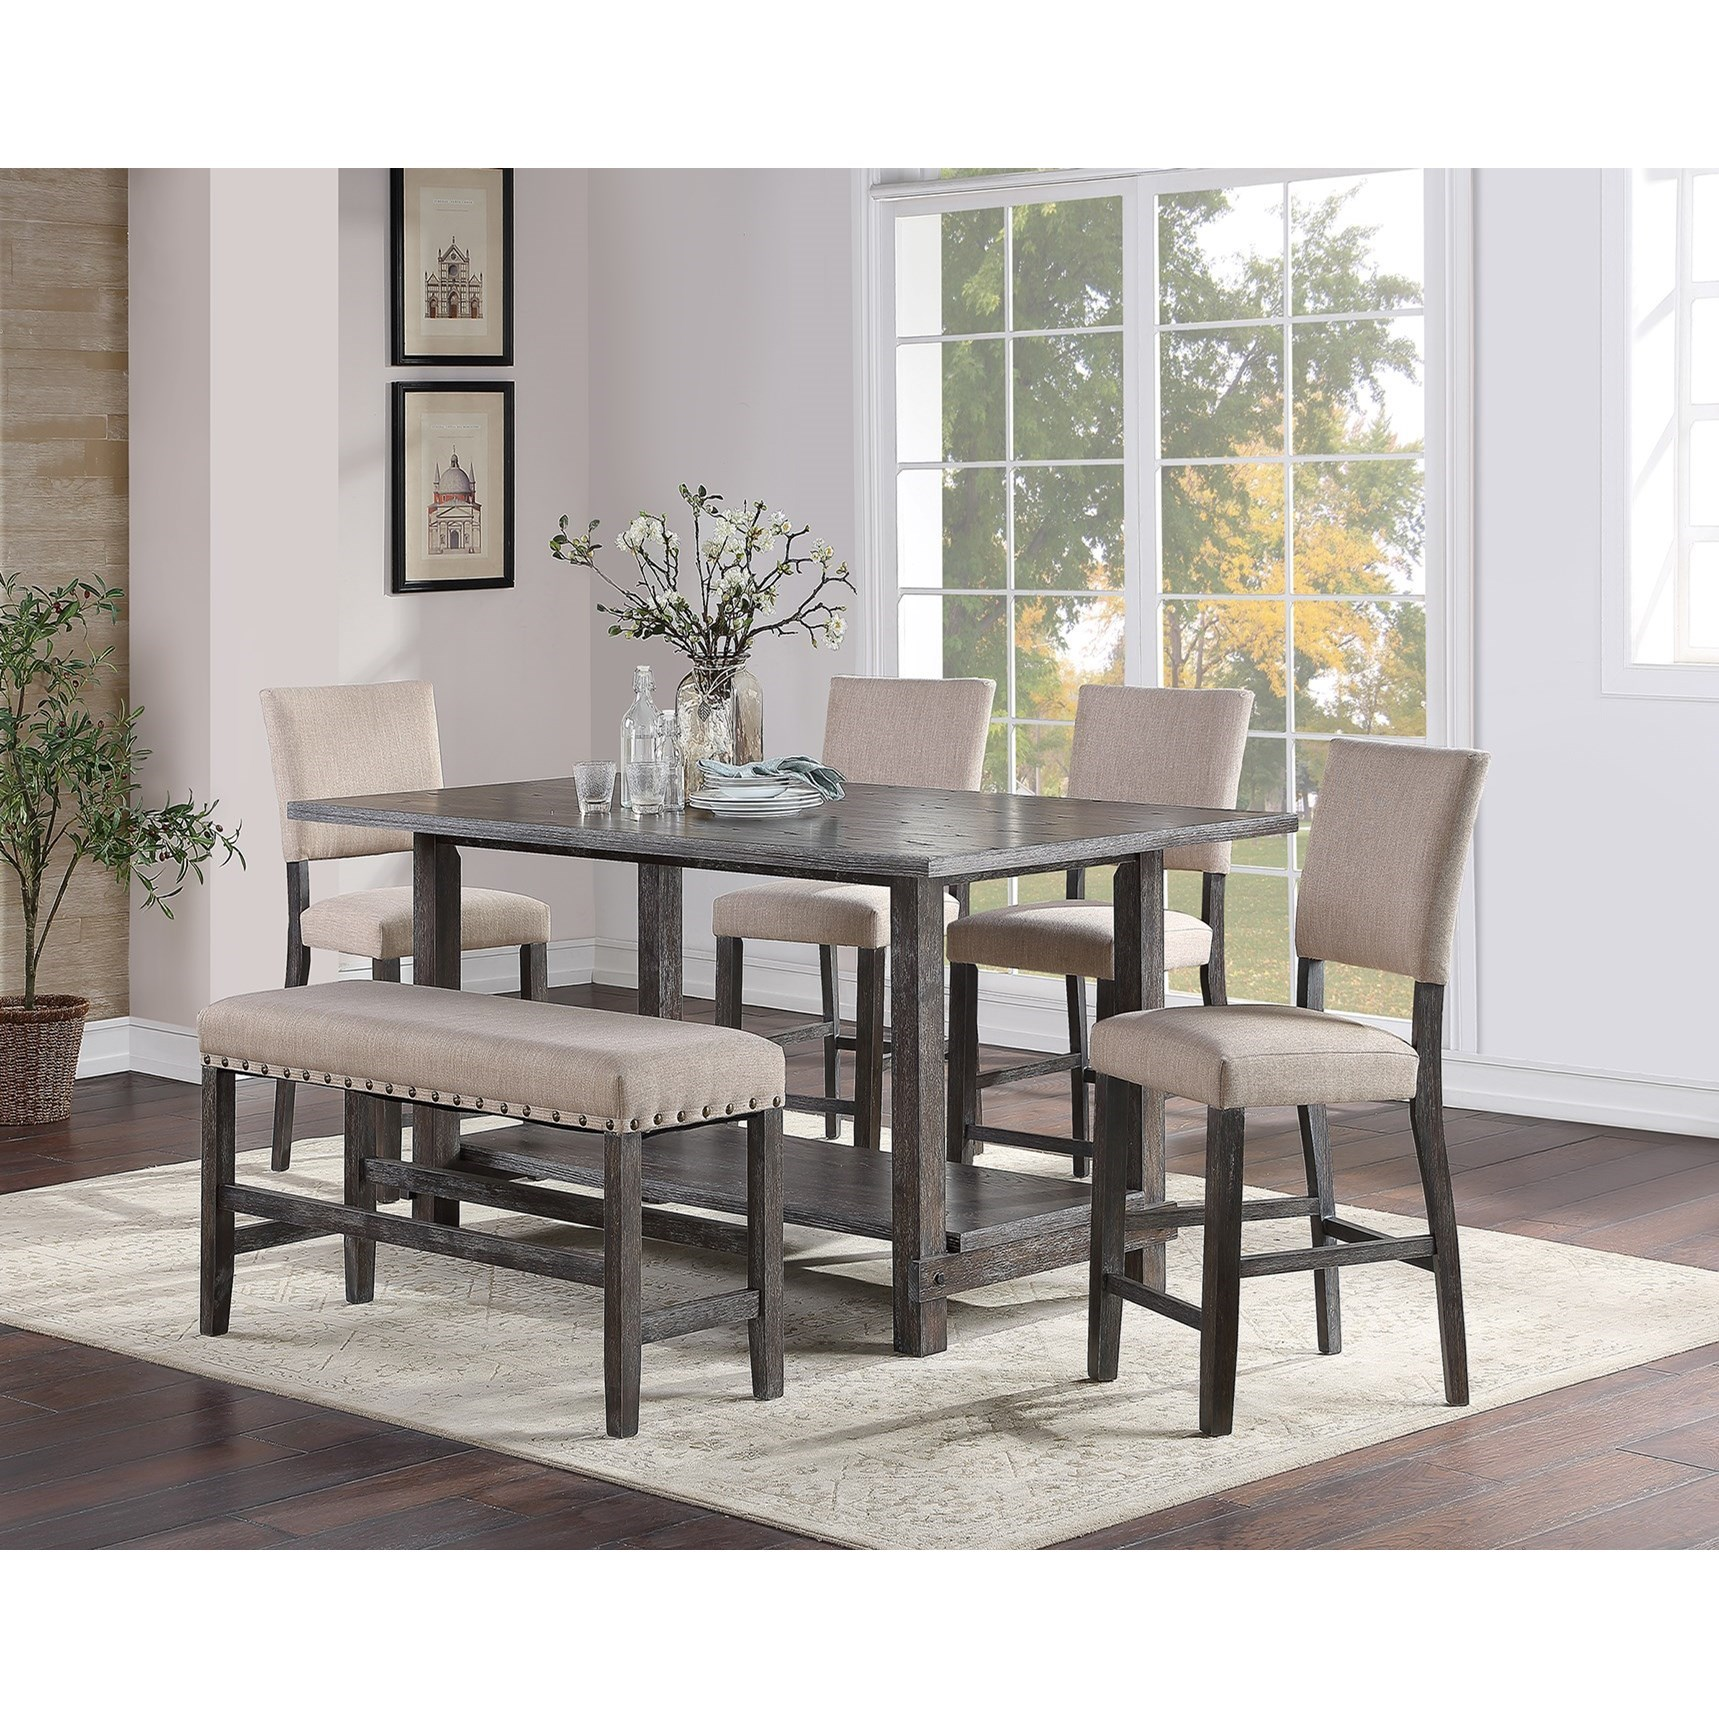 Aubrun Charcoal Counter Height Table and Chair Set by Standard Furniture at Beds N Stuff